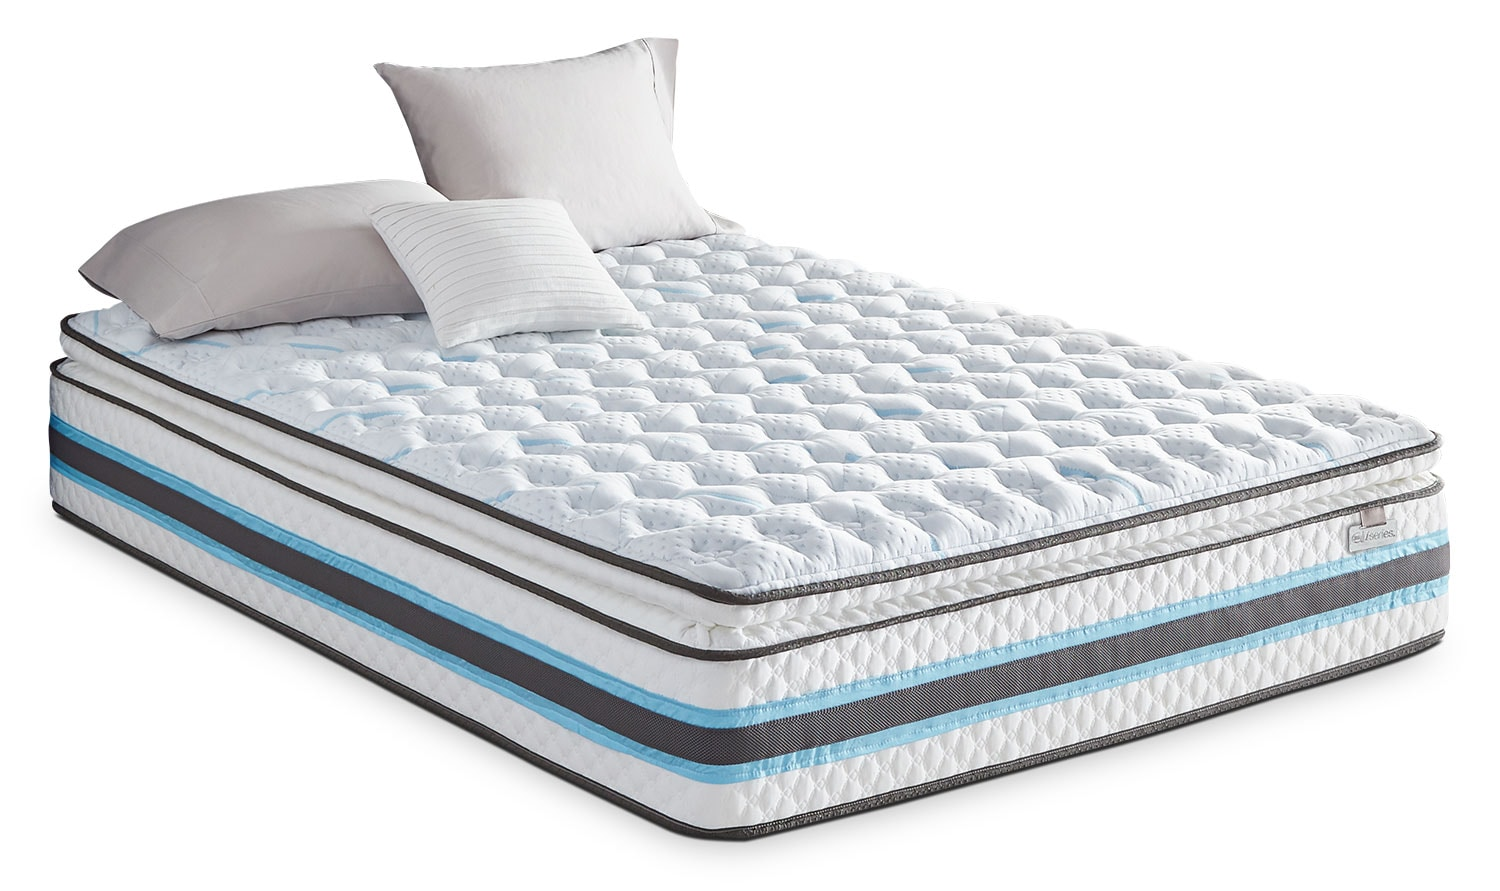 Serta iSeries® Breathtaking Pillow-Top Plush Queen Mattress